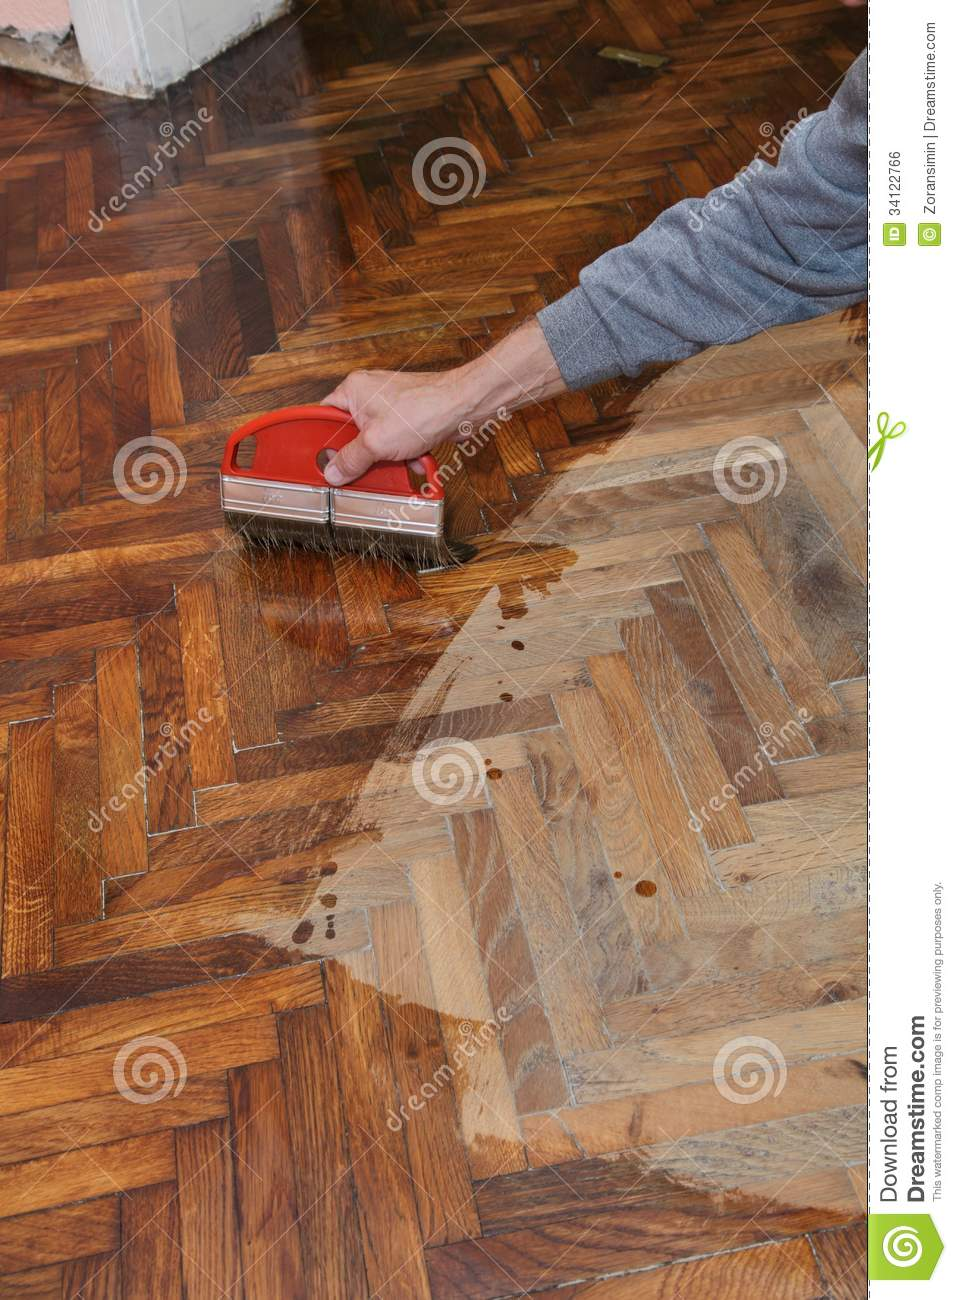 Home renovation royalty free stock image image 34122766 for Parquet renovation